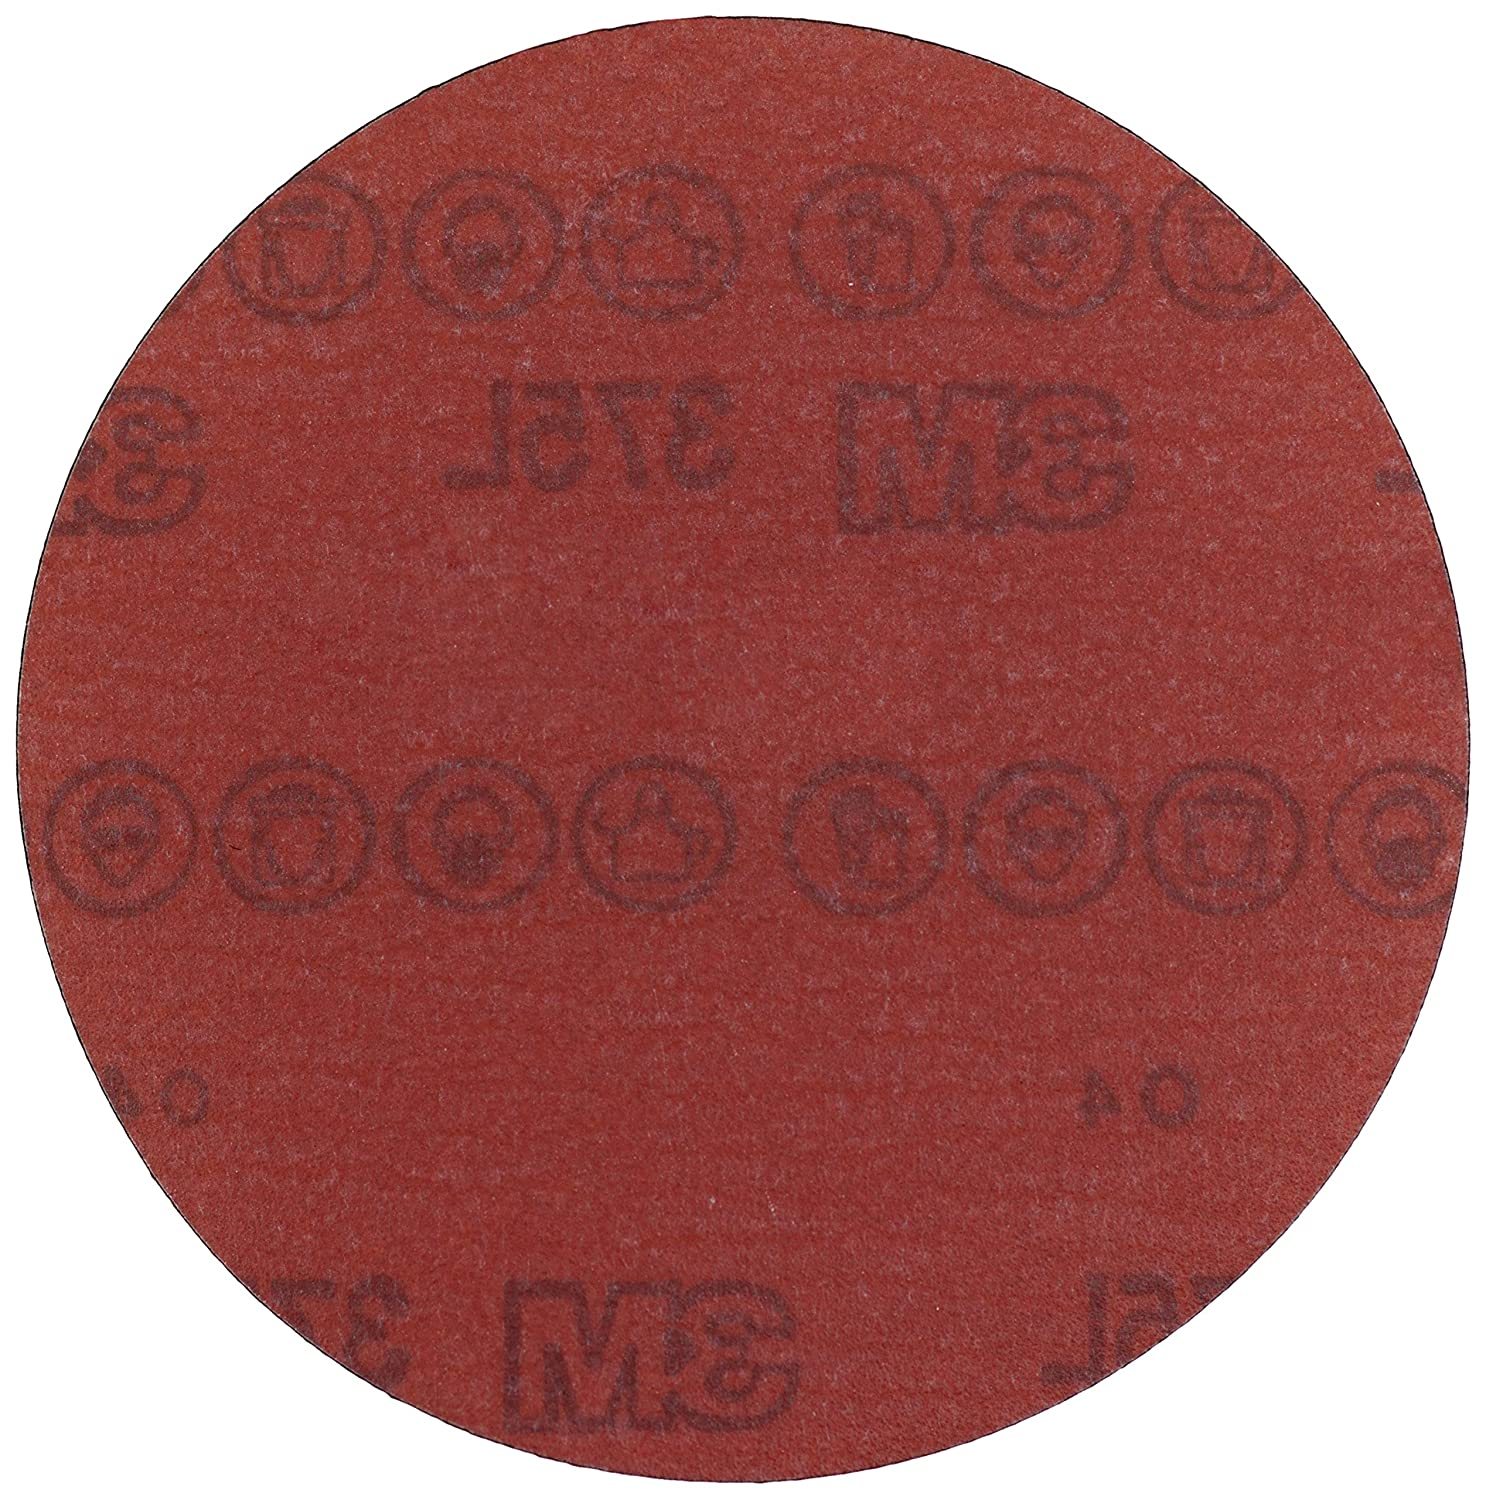 Standard Abrasives Surface Conditioning RC Disc 845050 5 in XCS 3M